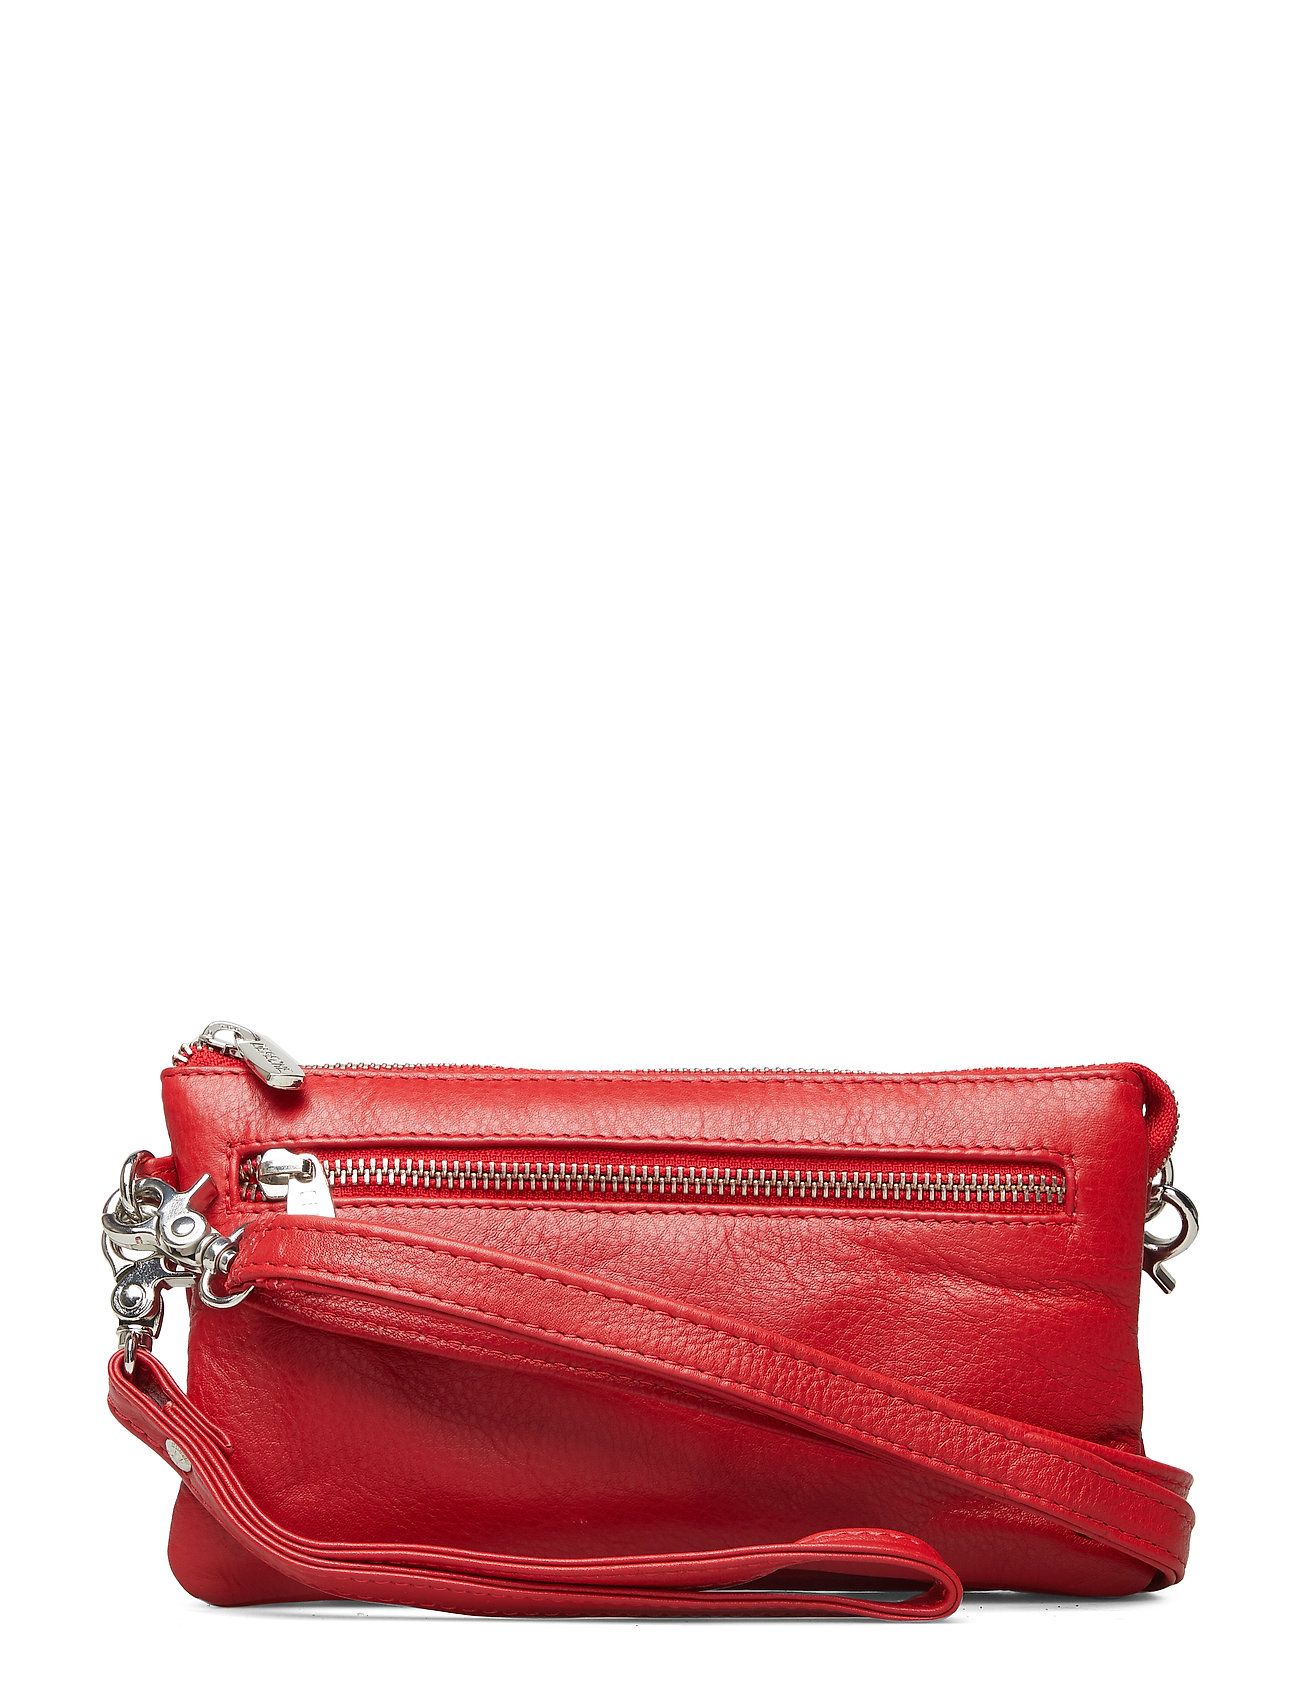 DEPECHE Small bag - RED